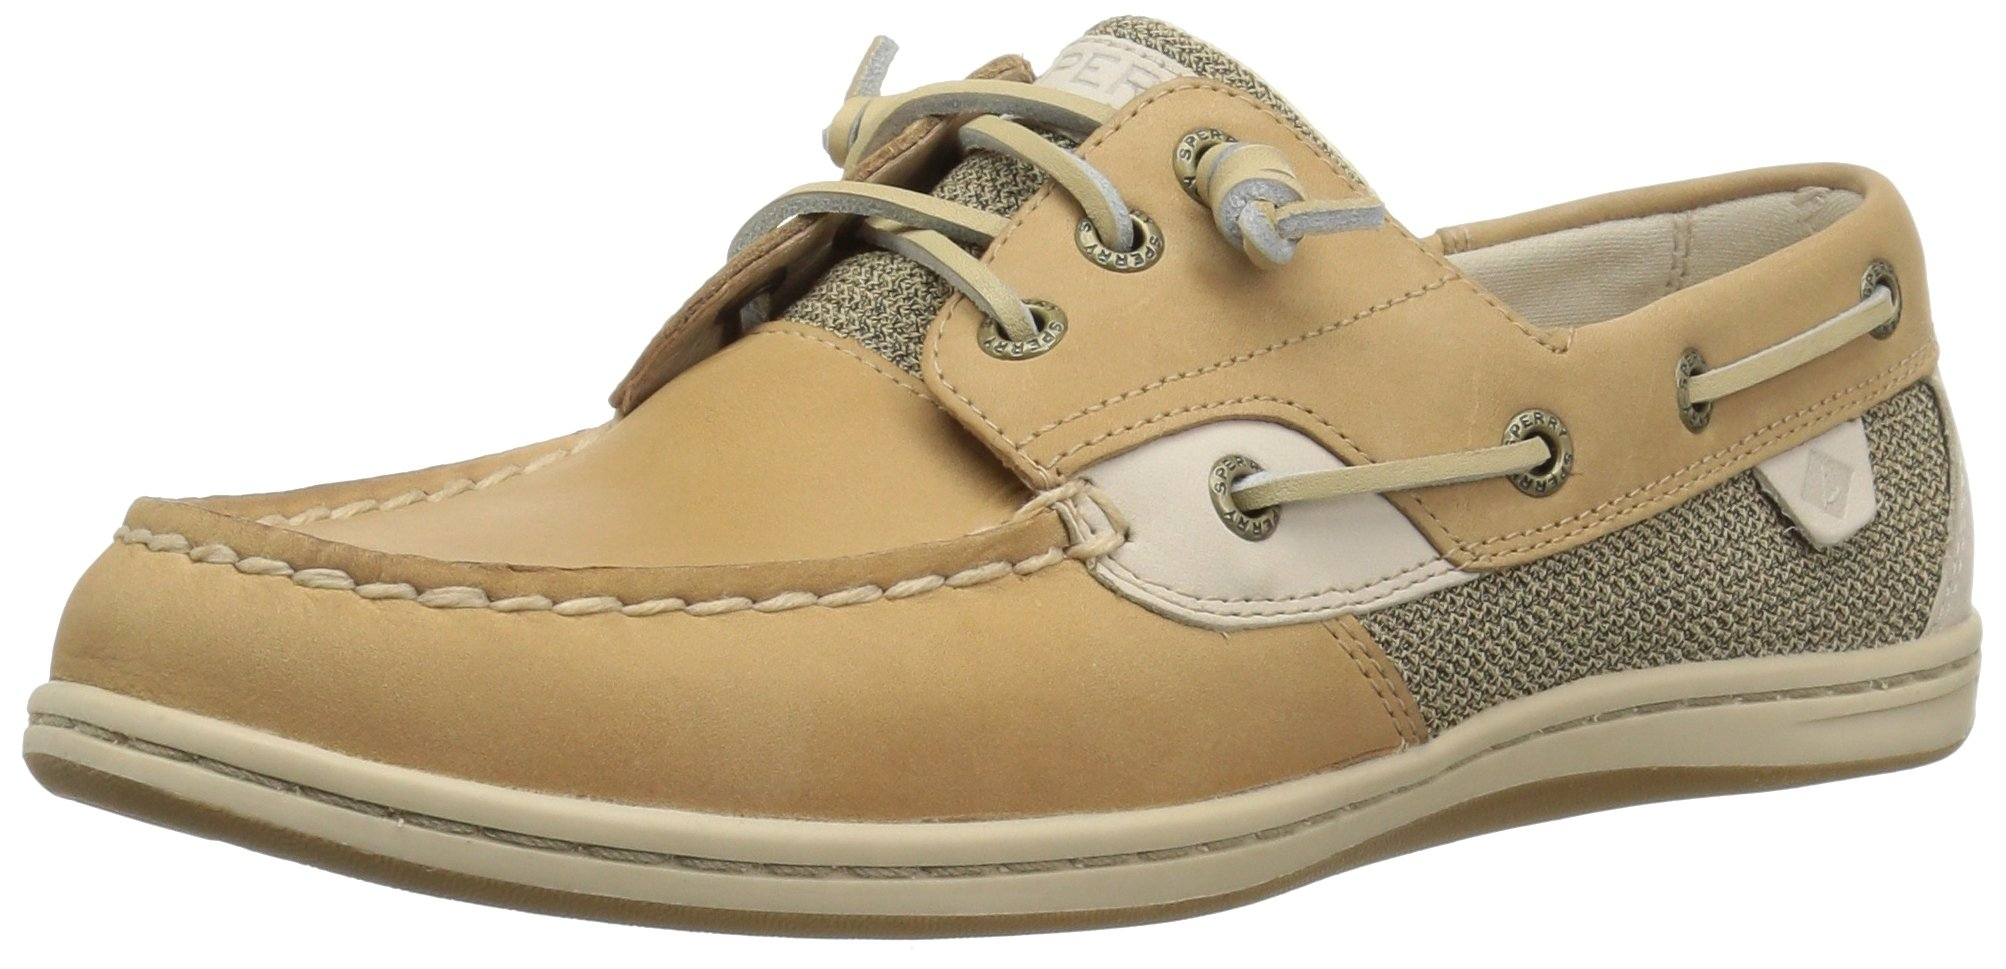 Sperry Top-Sider Women's Songfish Boat Shoe, Linen/Oat, 7.5 Wide US by Sperry Top-Sider (Image #1)